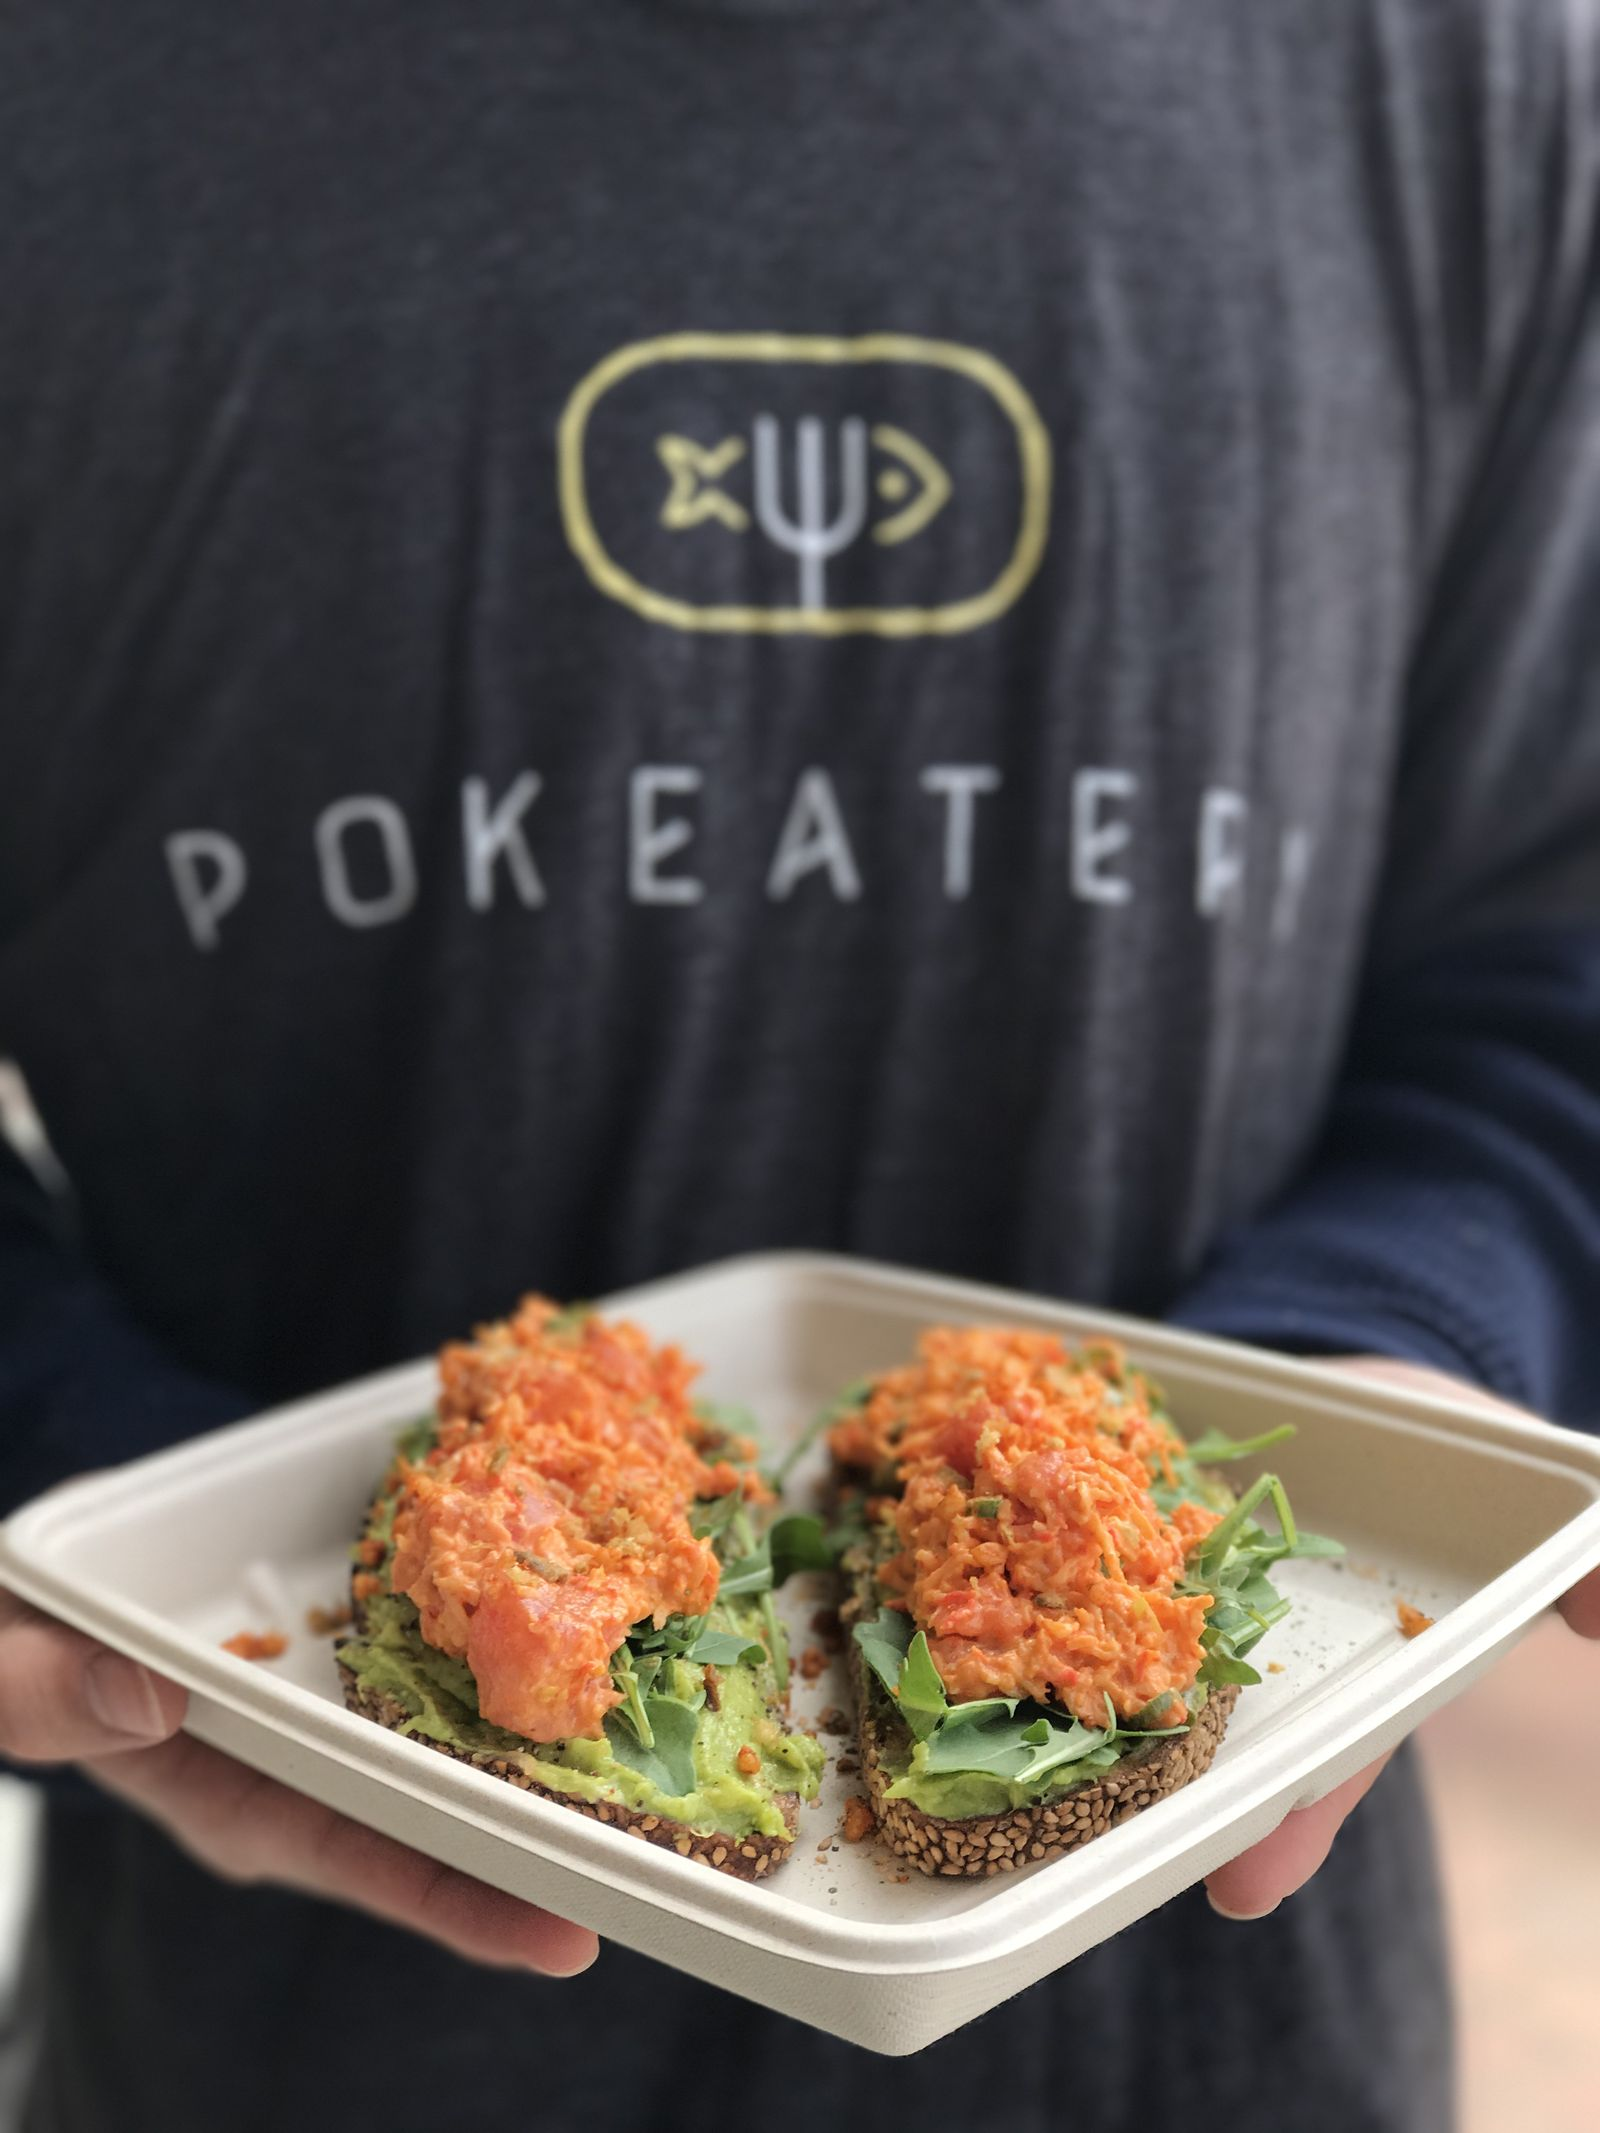 Pokeatery to Open First Texas Location in Austin by the End of 2017